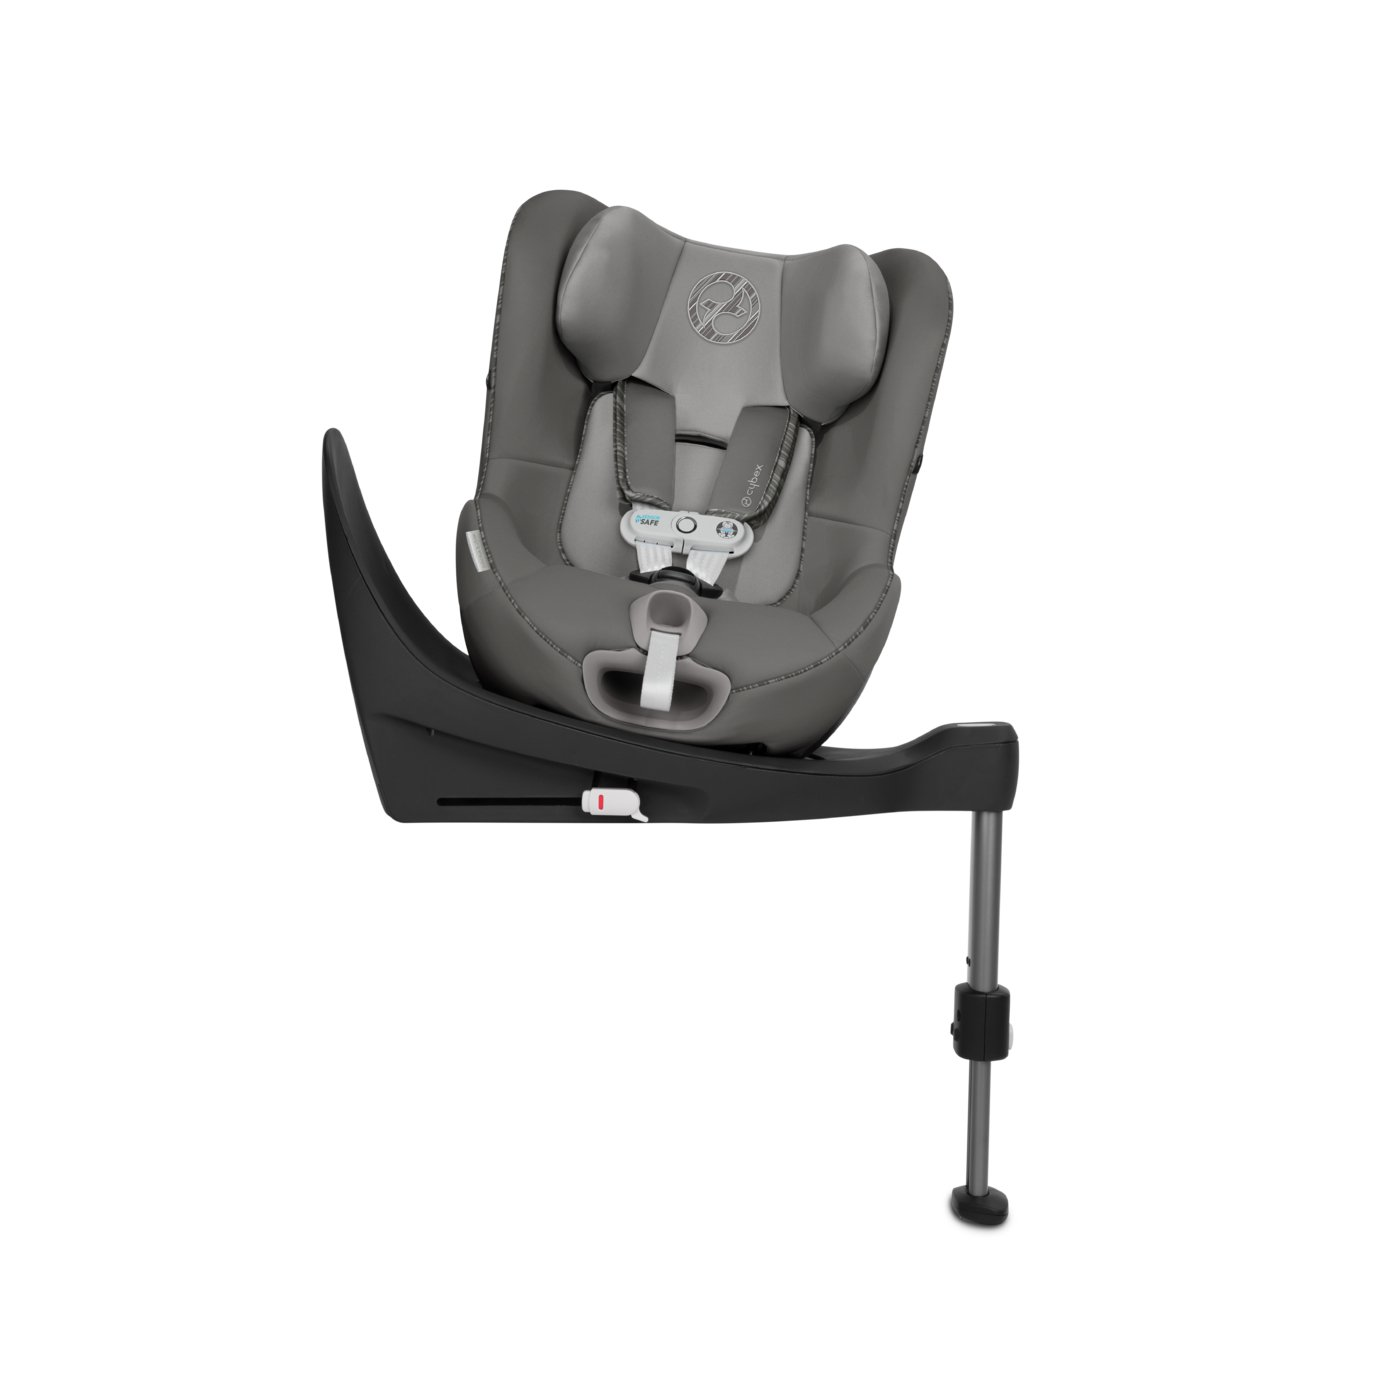 Cybex Sirona S i-Size Group 0+/1 Sensor Safe Car Seat - Grey